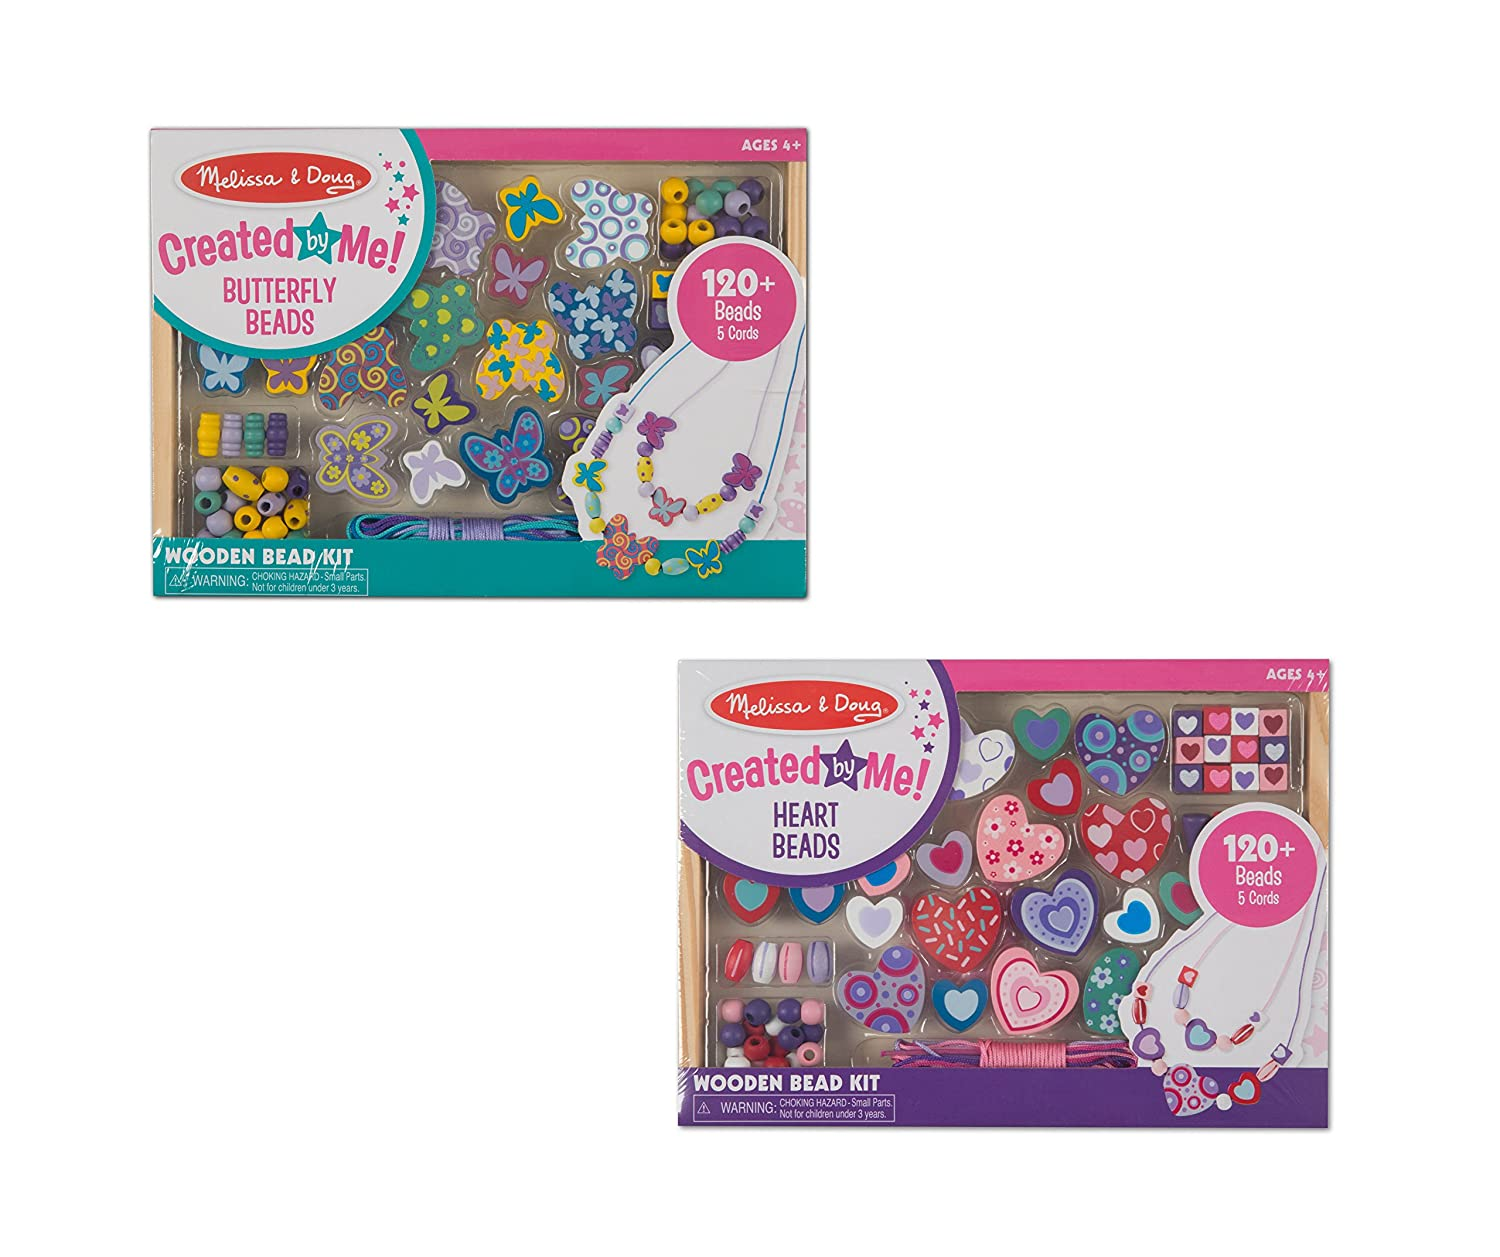 Melissa & Doug Butterfly Friends Wooden Bead Set With 120+ Beads for Jewelry-Making 4179